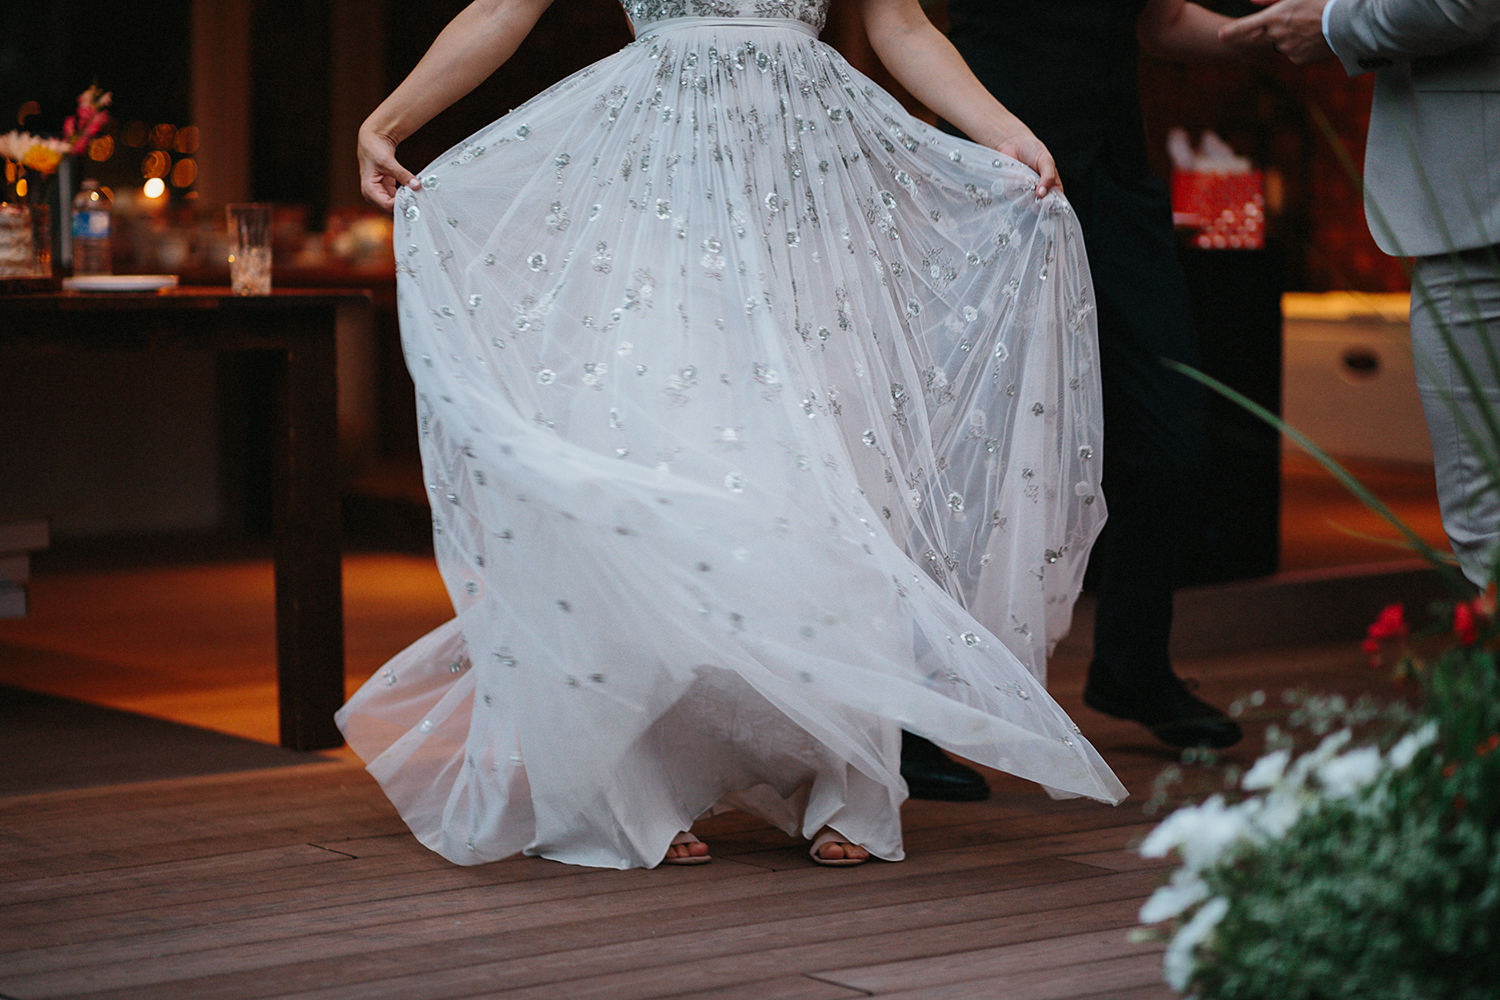 Backyard-toronto-film-photographer-ryanne-hollies-photography-diy-string-lights-and-lanterns-reception-first-dance-documentary-fun-candid-dancing-together-brides-dress.jpg